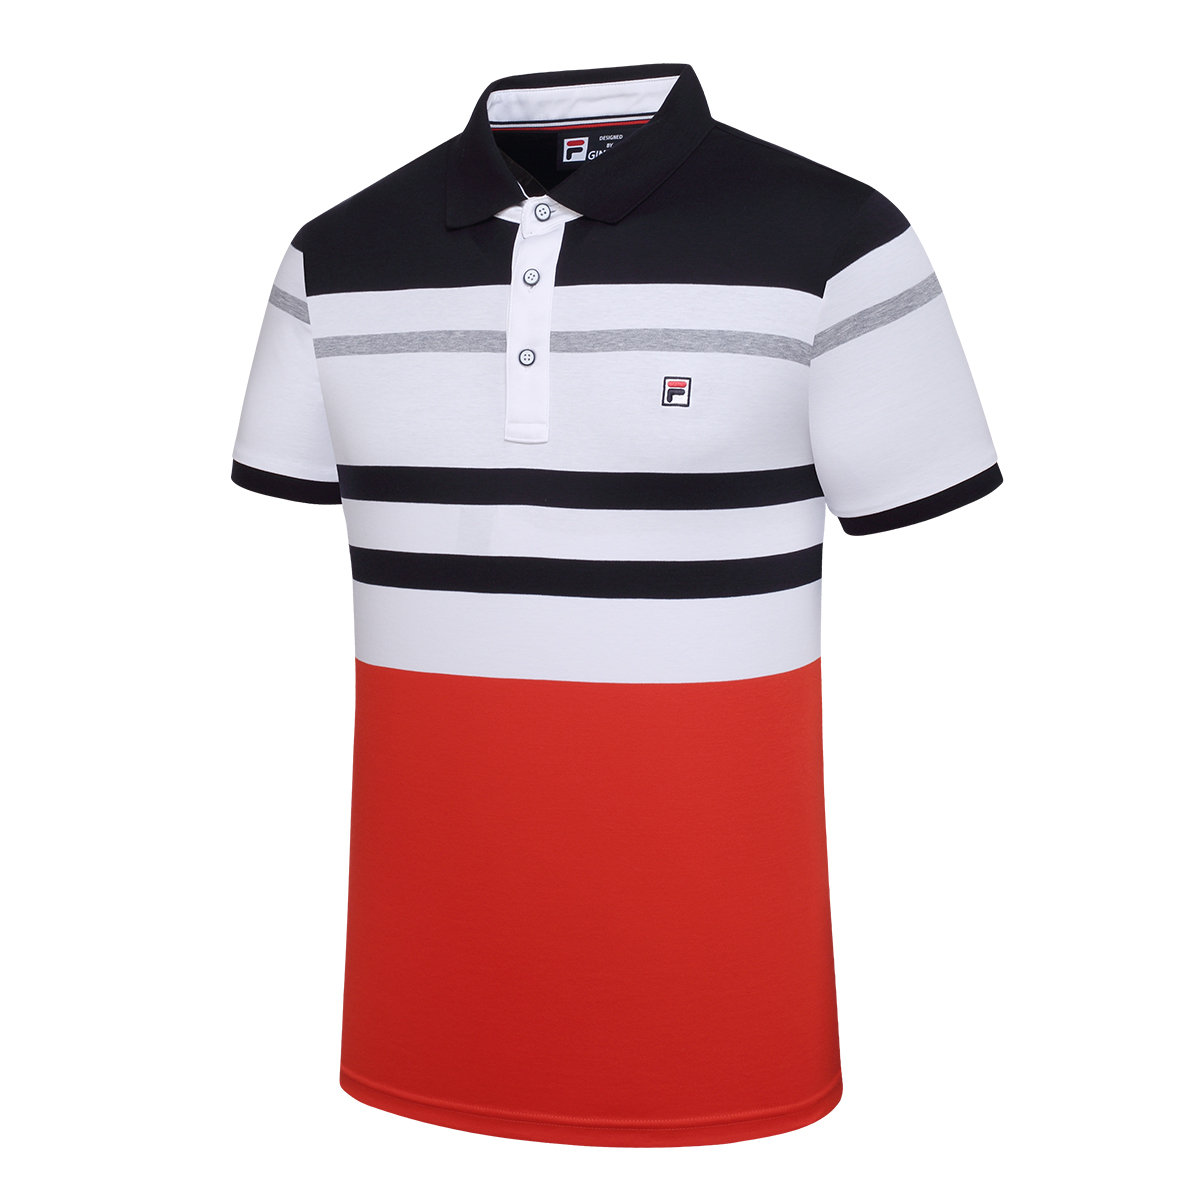 fila polo mens 2018